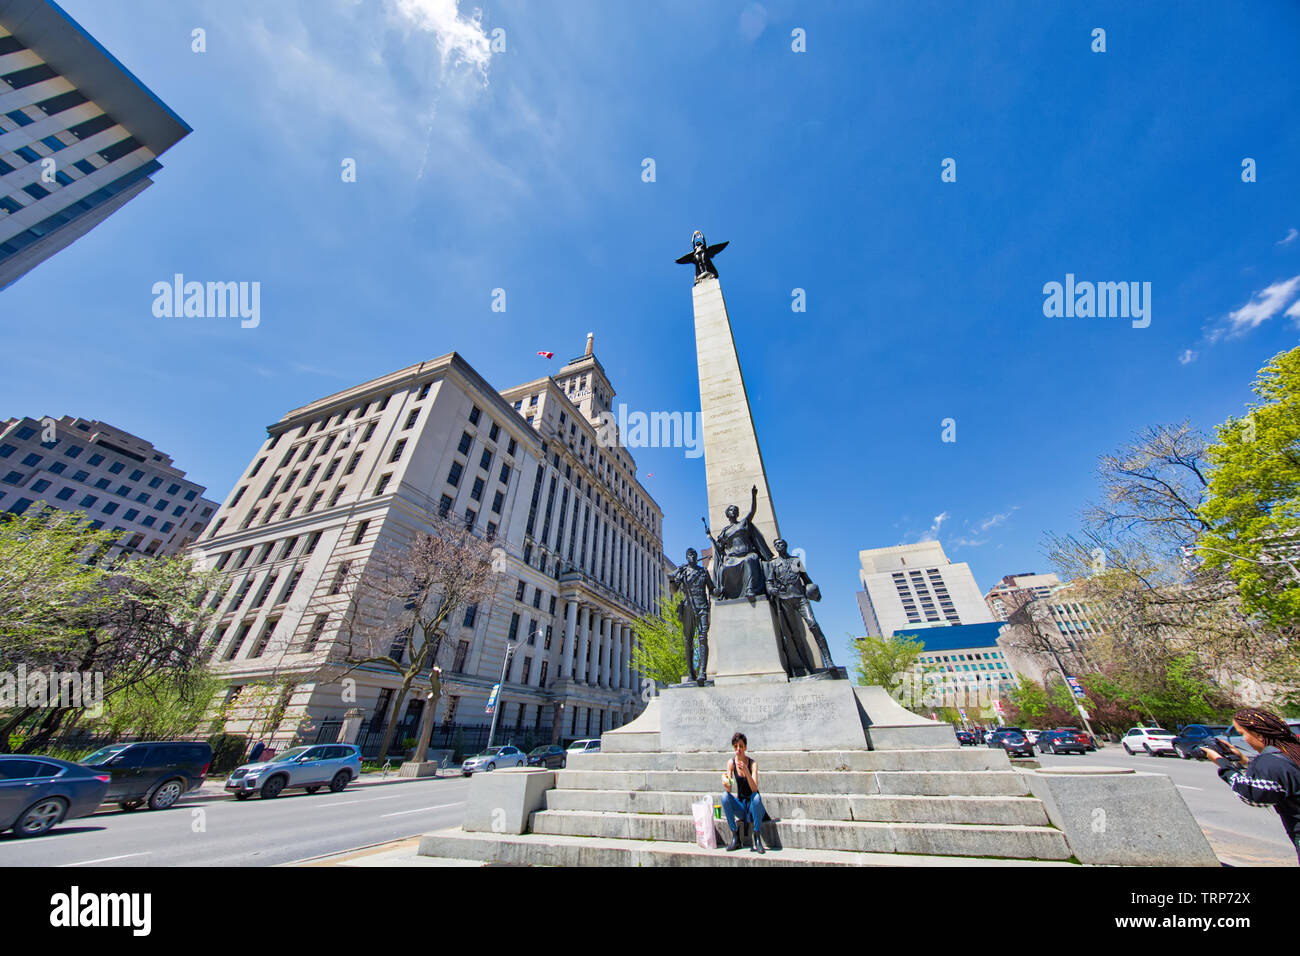 Toronto, Canada-May 20, 2019:  South African War Memorial (a Boer War monument) located at University Avenue and Queen Street West in Toronto - Stock Image